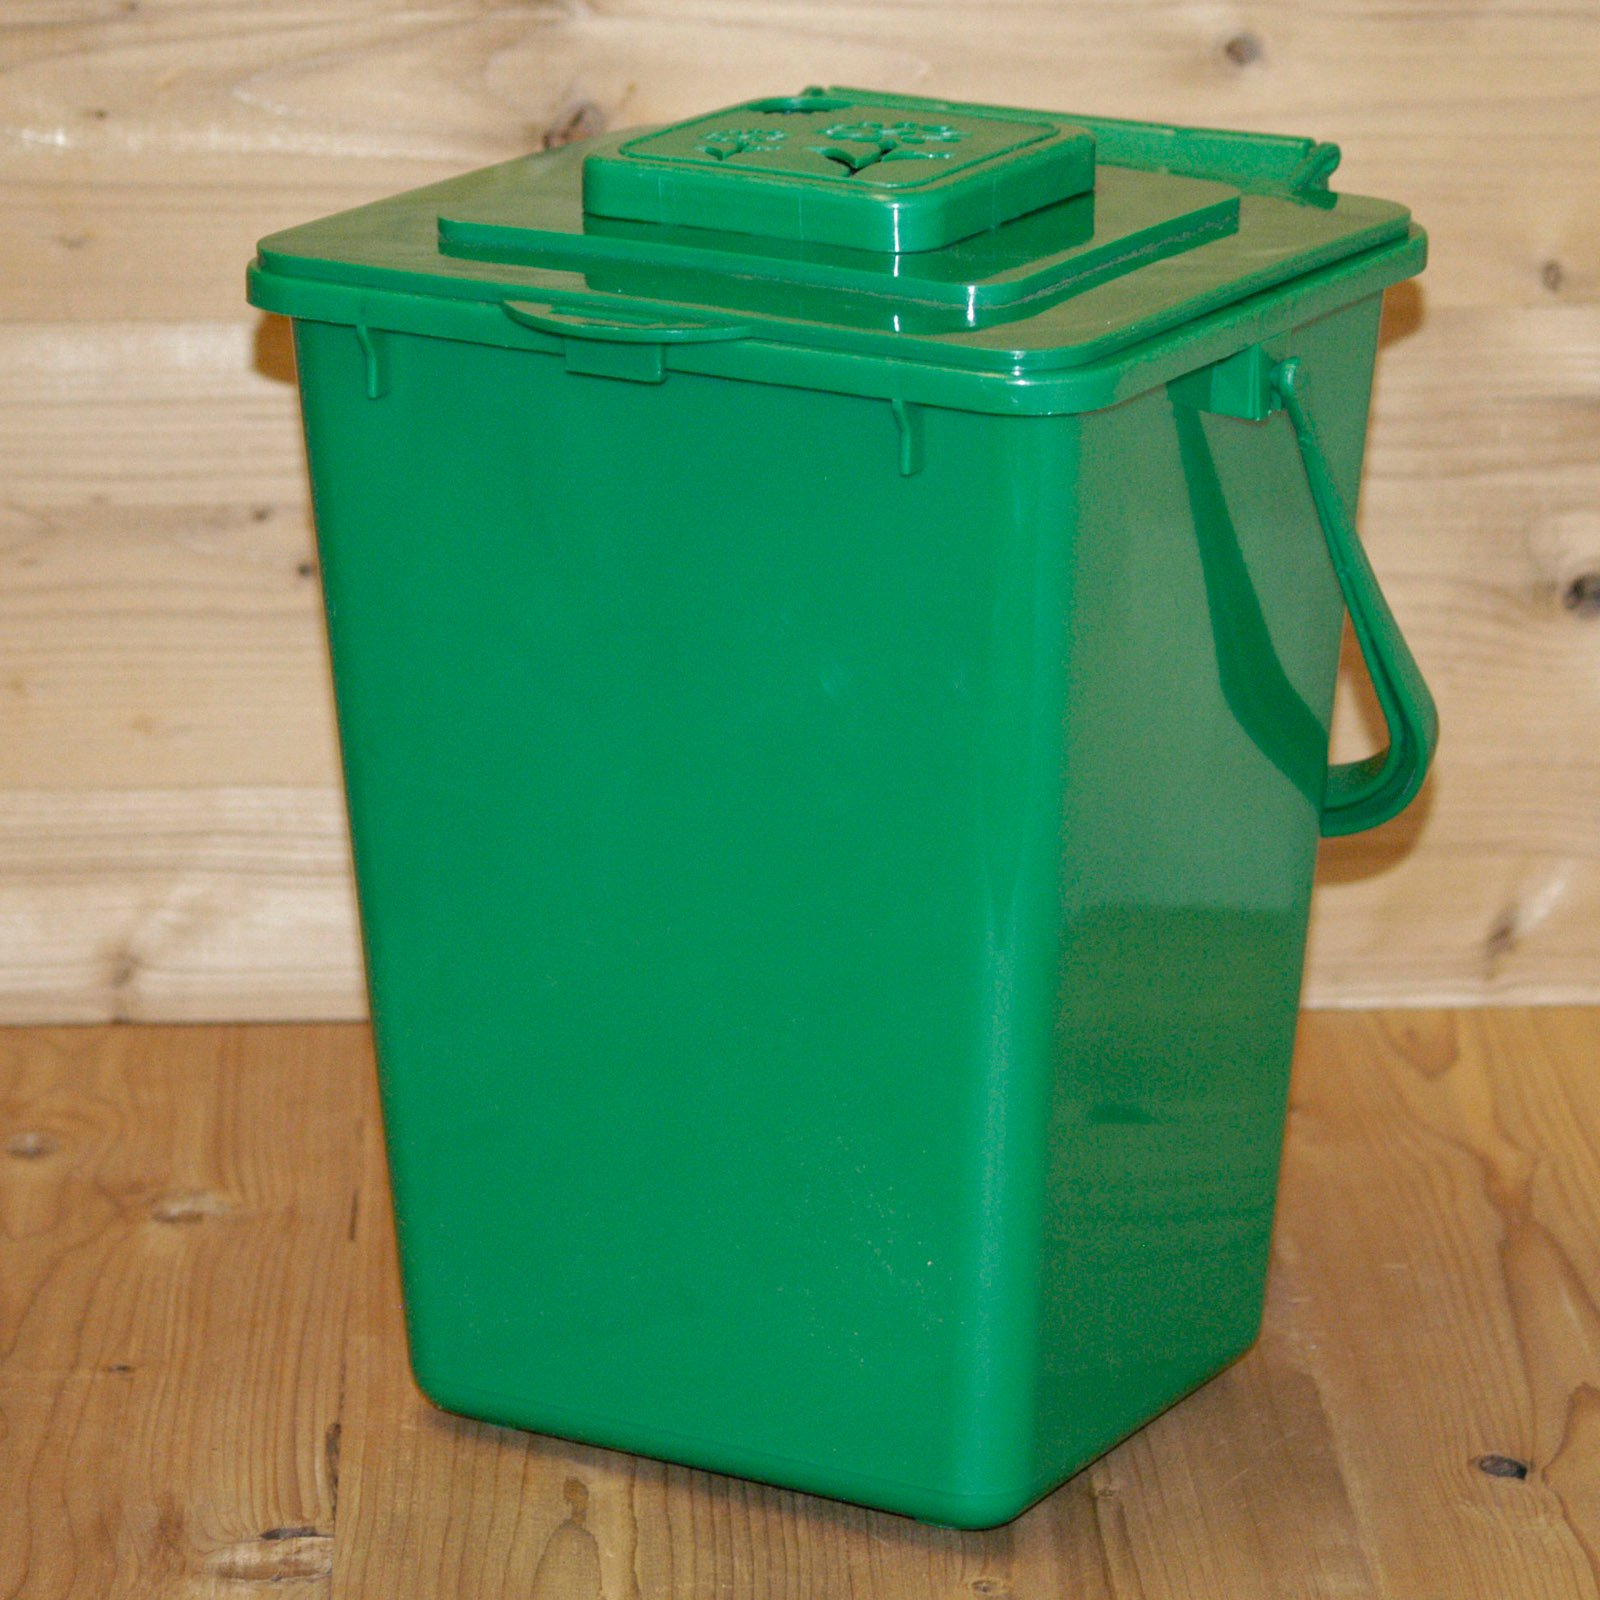 Superior Eco Kitchen Compost Pail With Carbon Filter, Green   Walmart.com